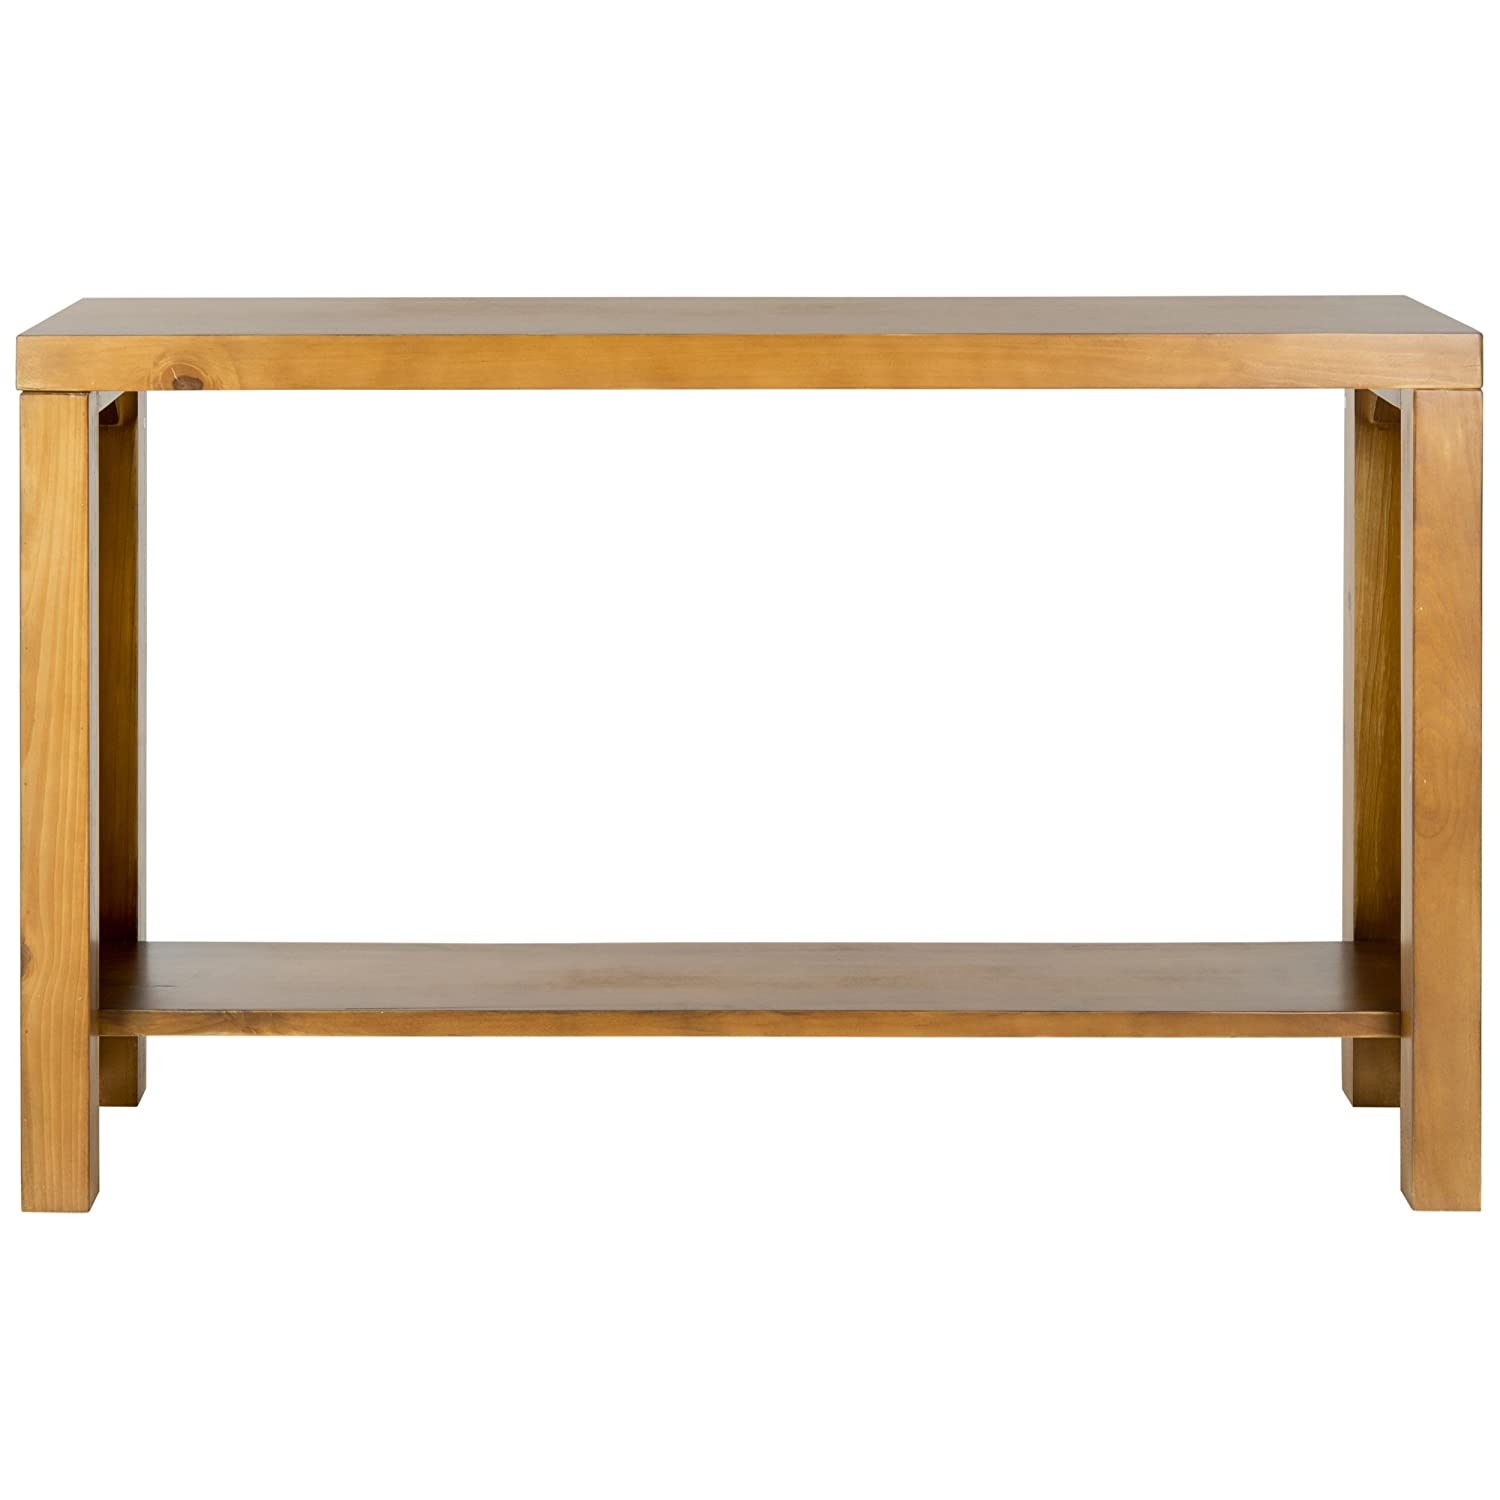 amazoncom safavieh american home collection lahoma pecan console table kitchen u0026 dining - Cheap Console Tables